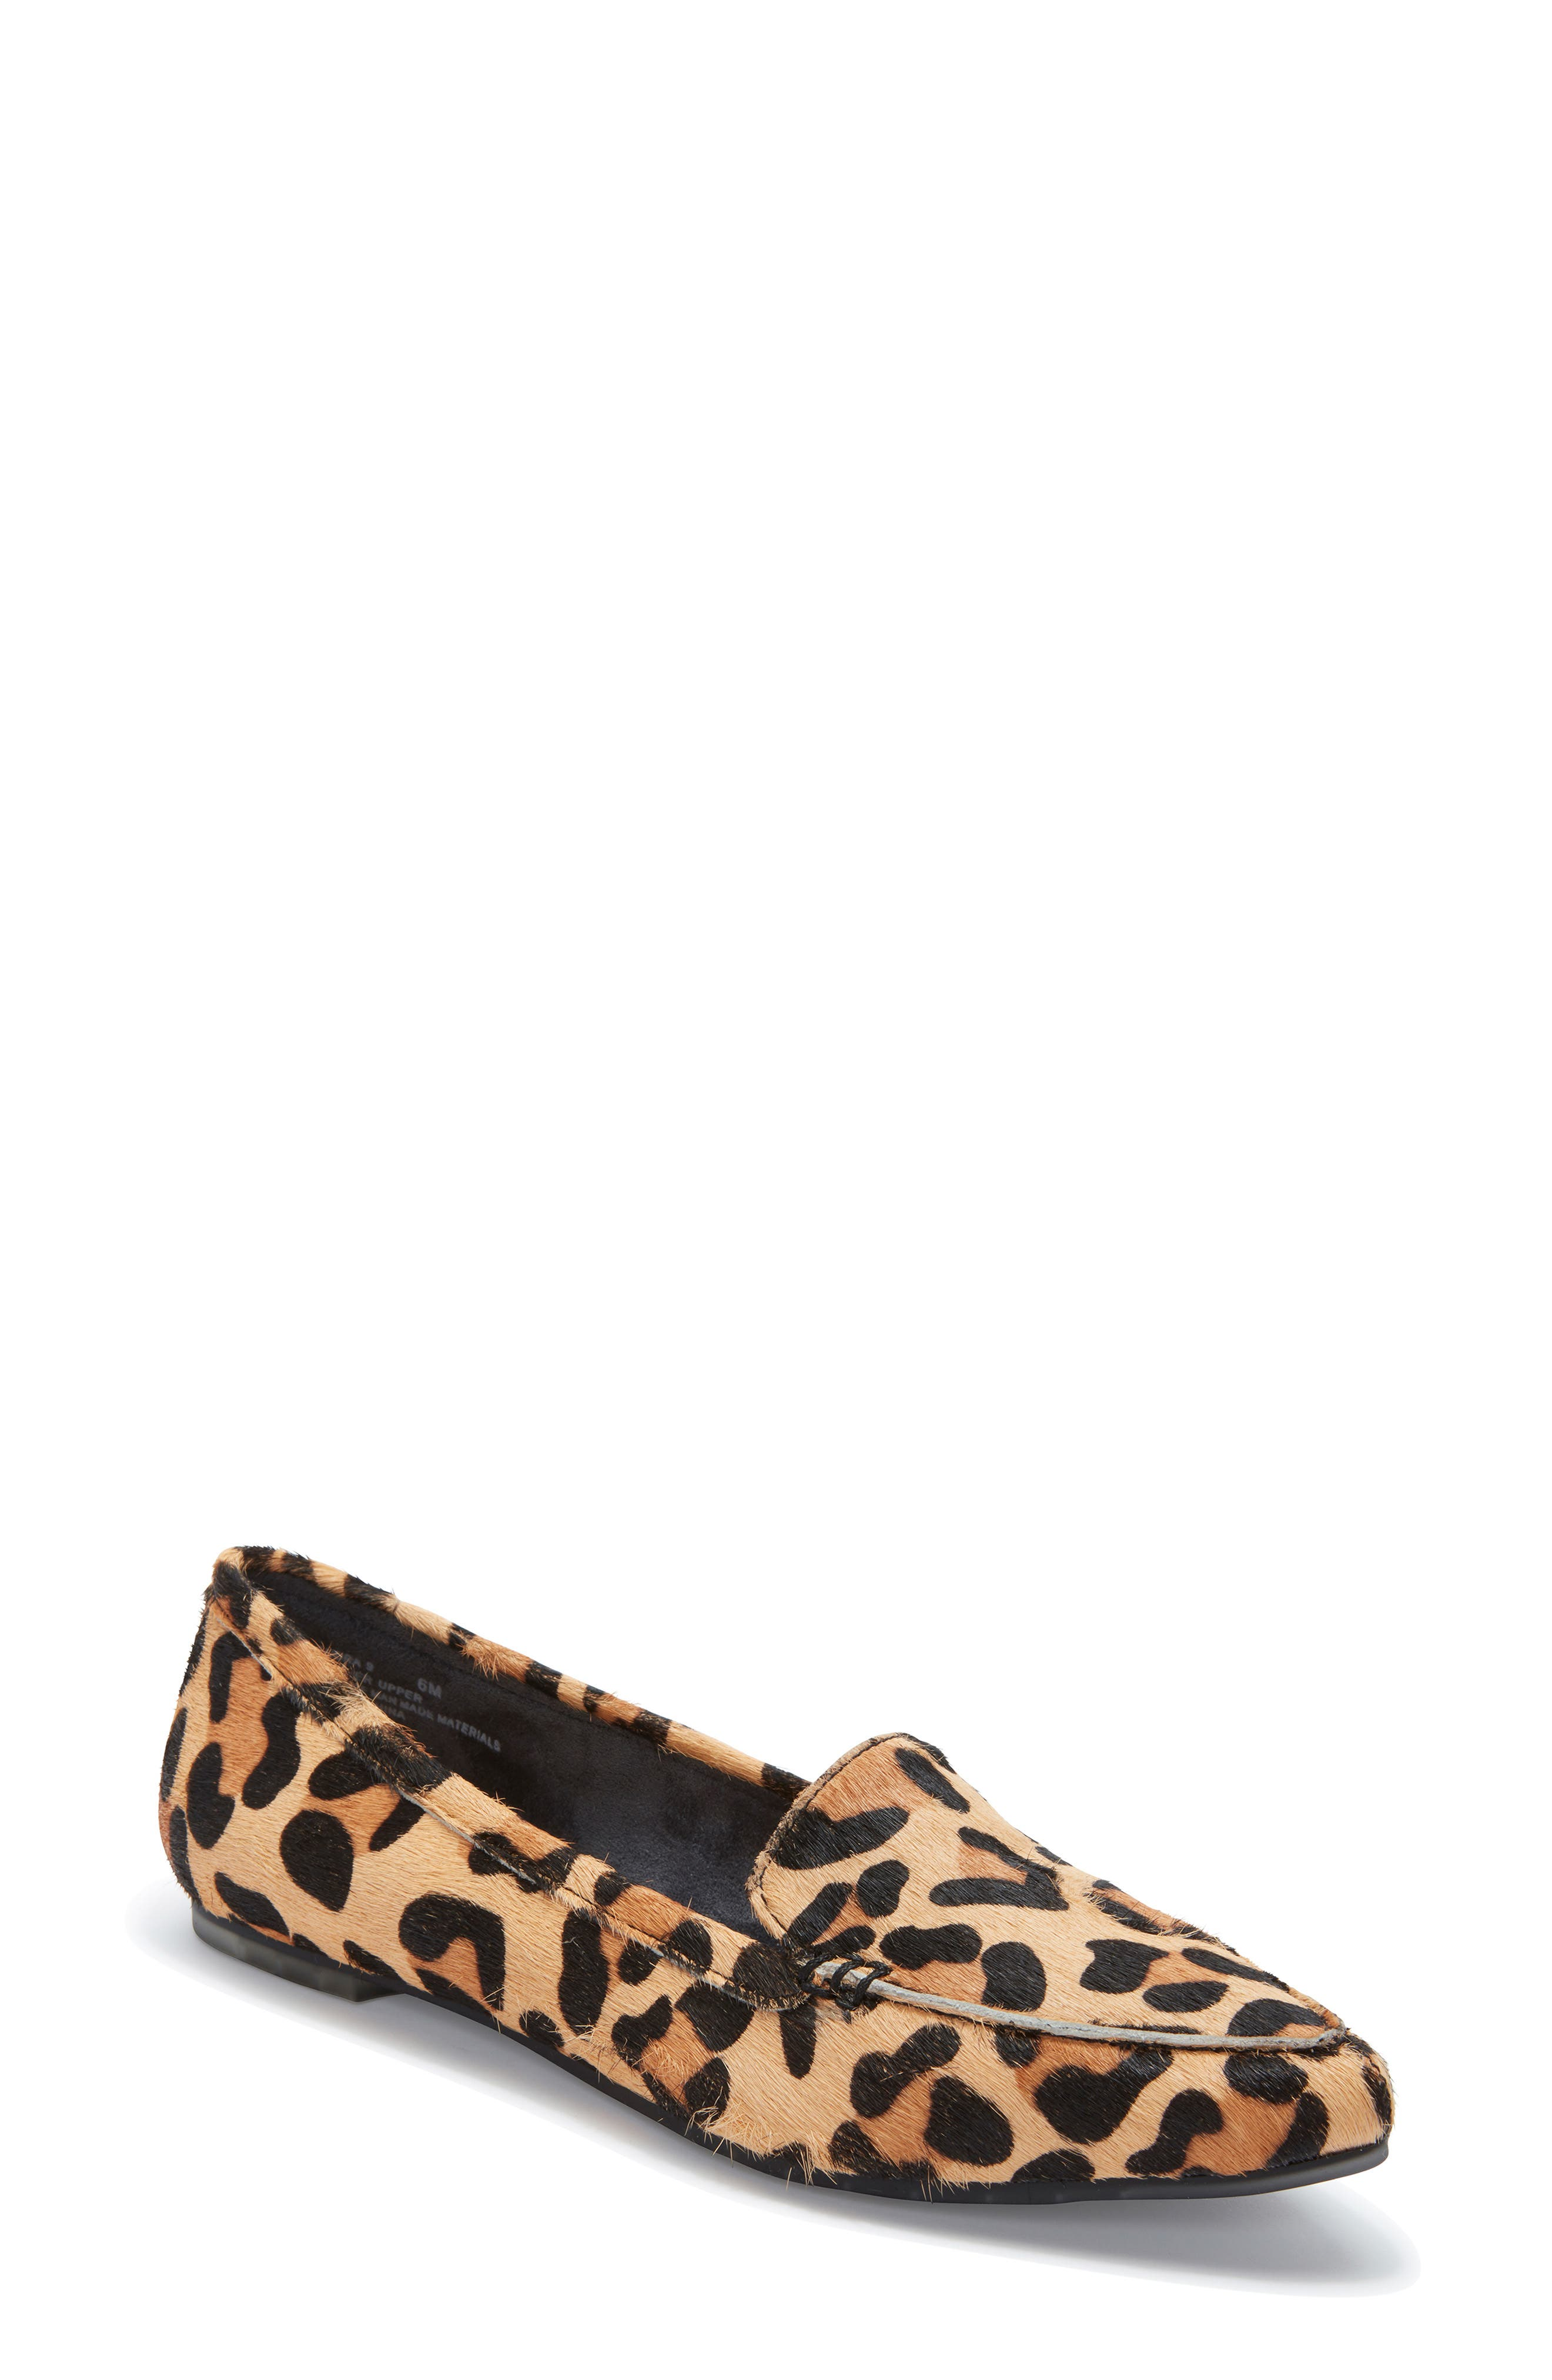 ME TOO, Audra Genuine Calf Hair Loafer Flat, Main thumbnail 1, color, TAN JAGUAR CALF HAIR